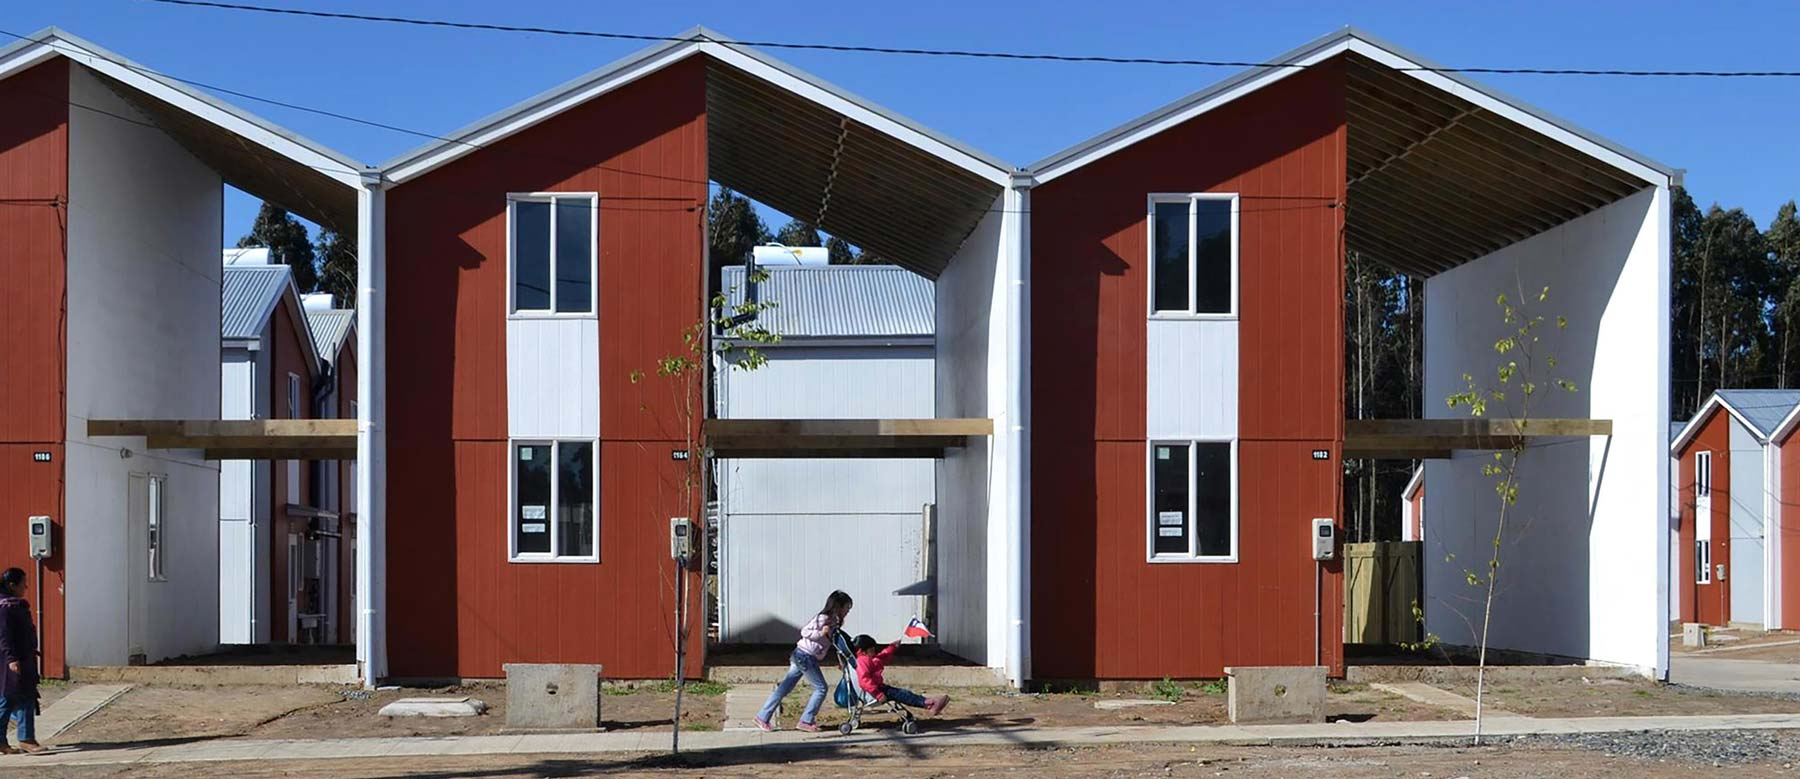 Elemental Makes Housing Schemes Available For Public Use